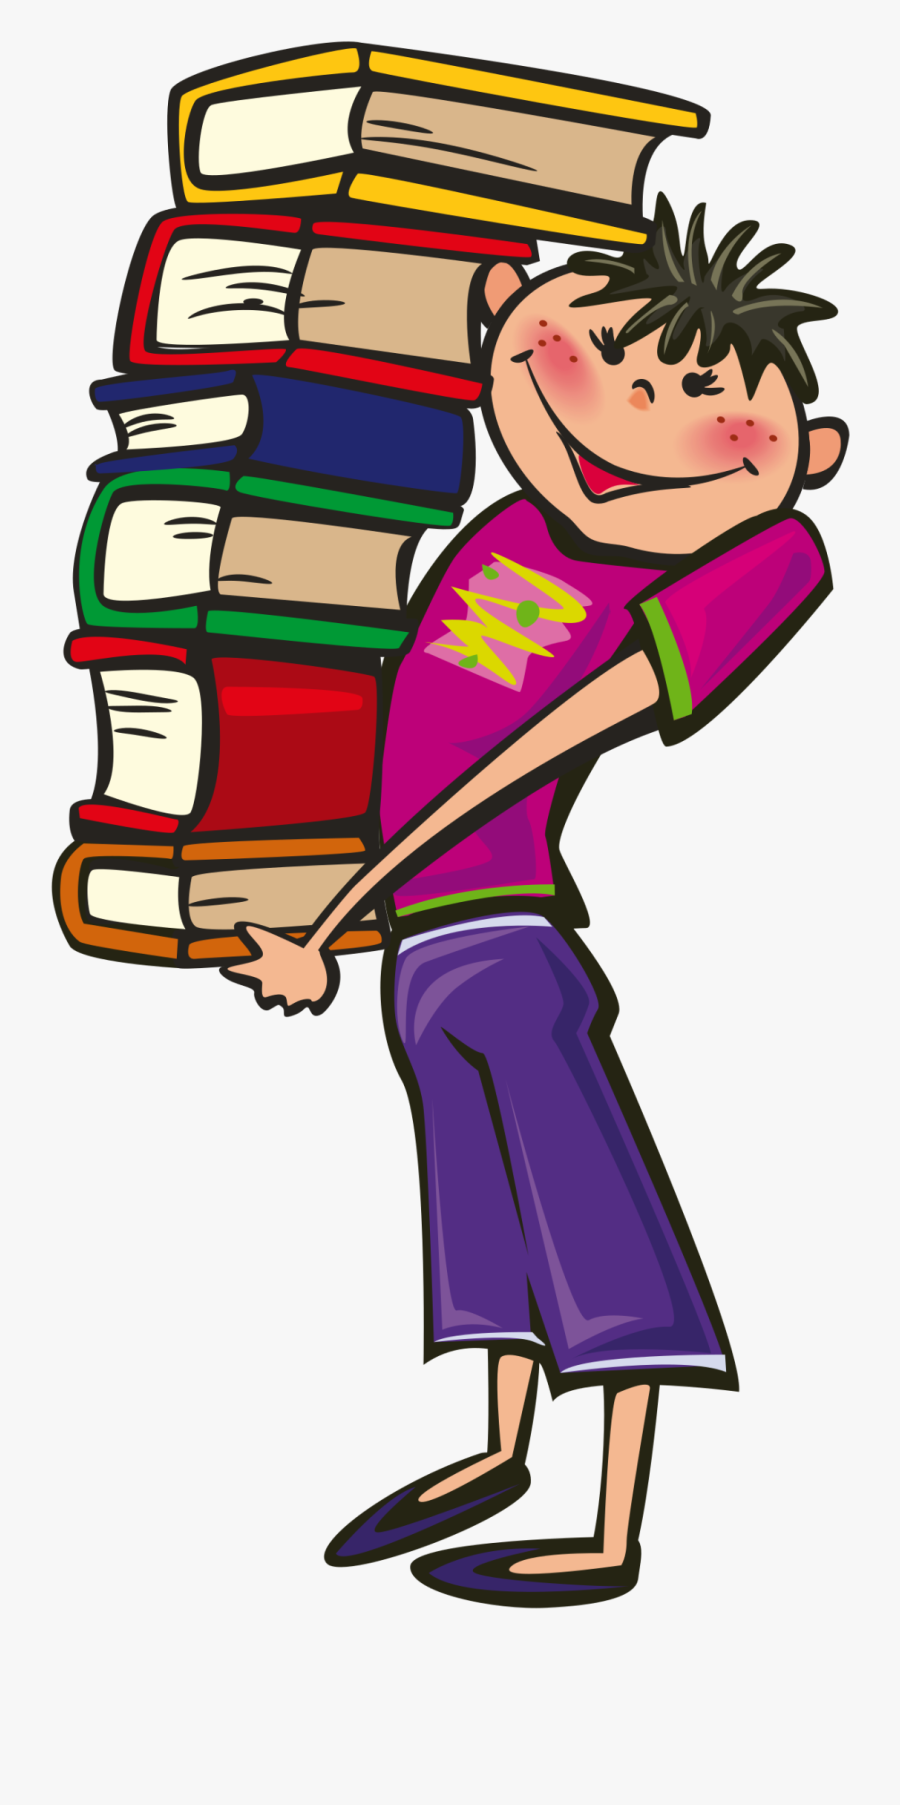 Transparent Hypothesis Clipart - Student With Books Clipart, Transparent Clipart